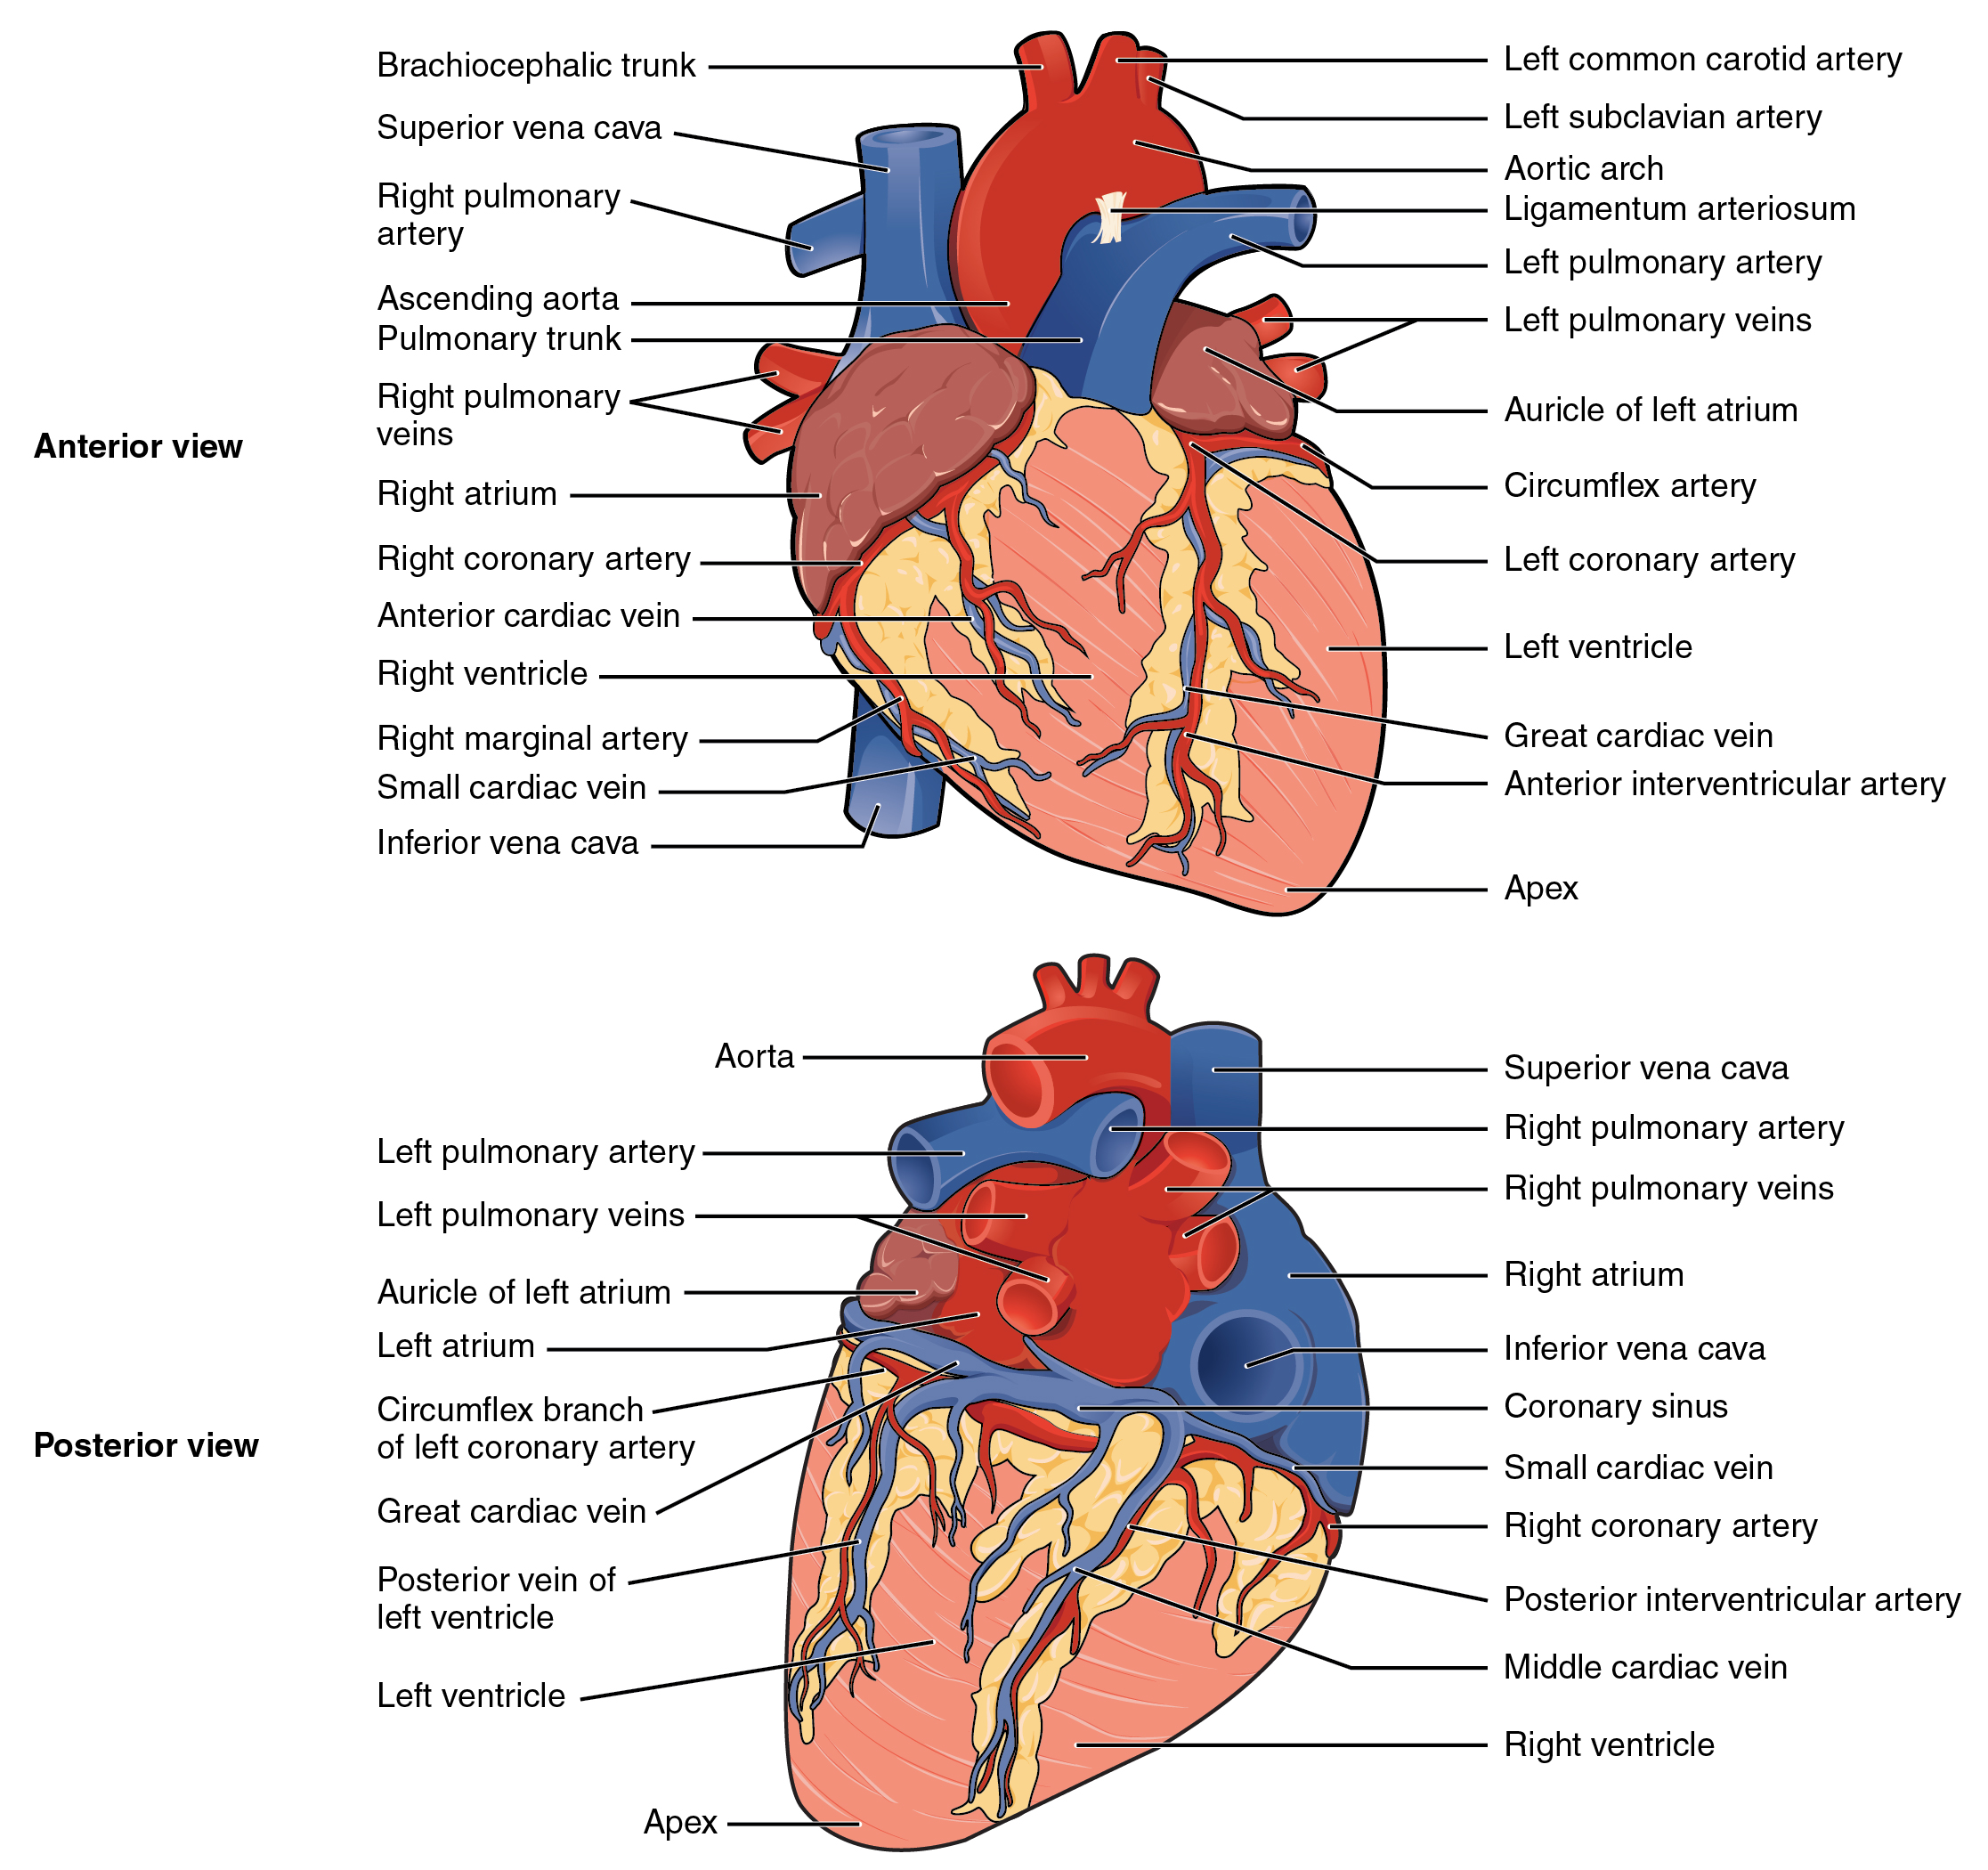 The top panel shows the anterior view of the heart and the bottom panel shows the posterior view of the human heart. In both panels, the main parts of the heart are labeled.